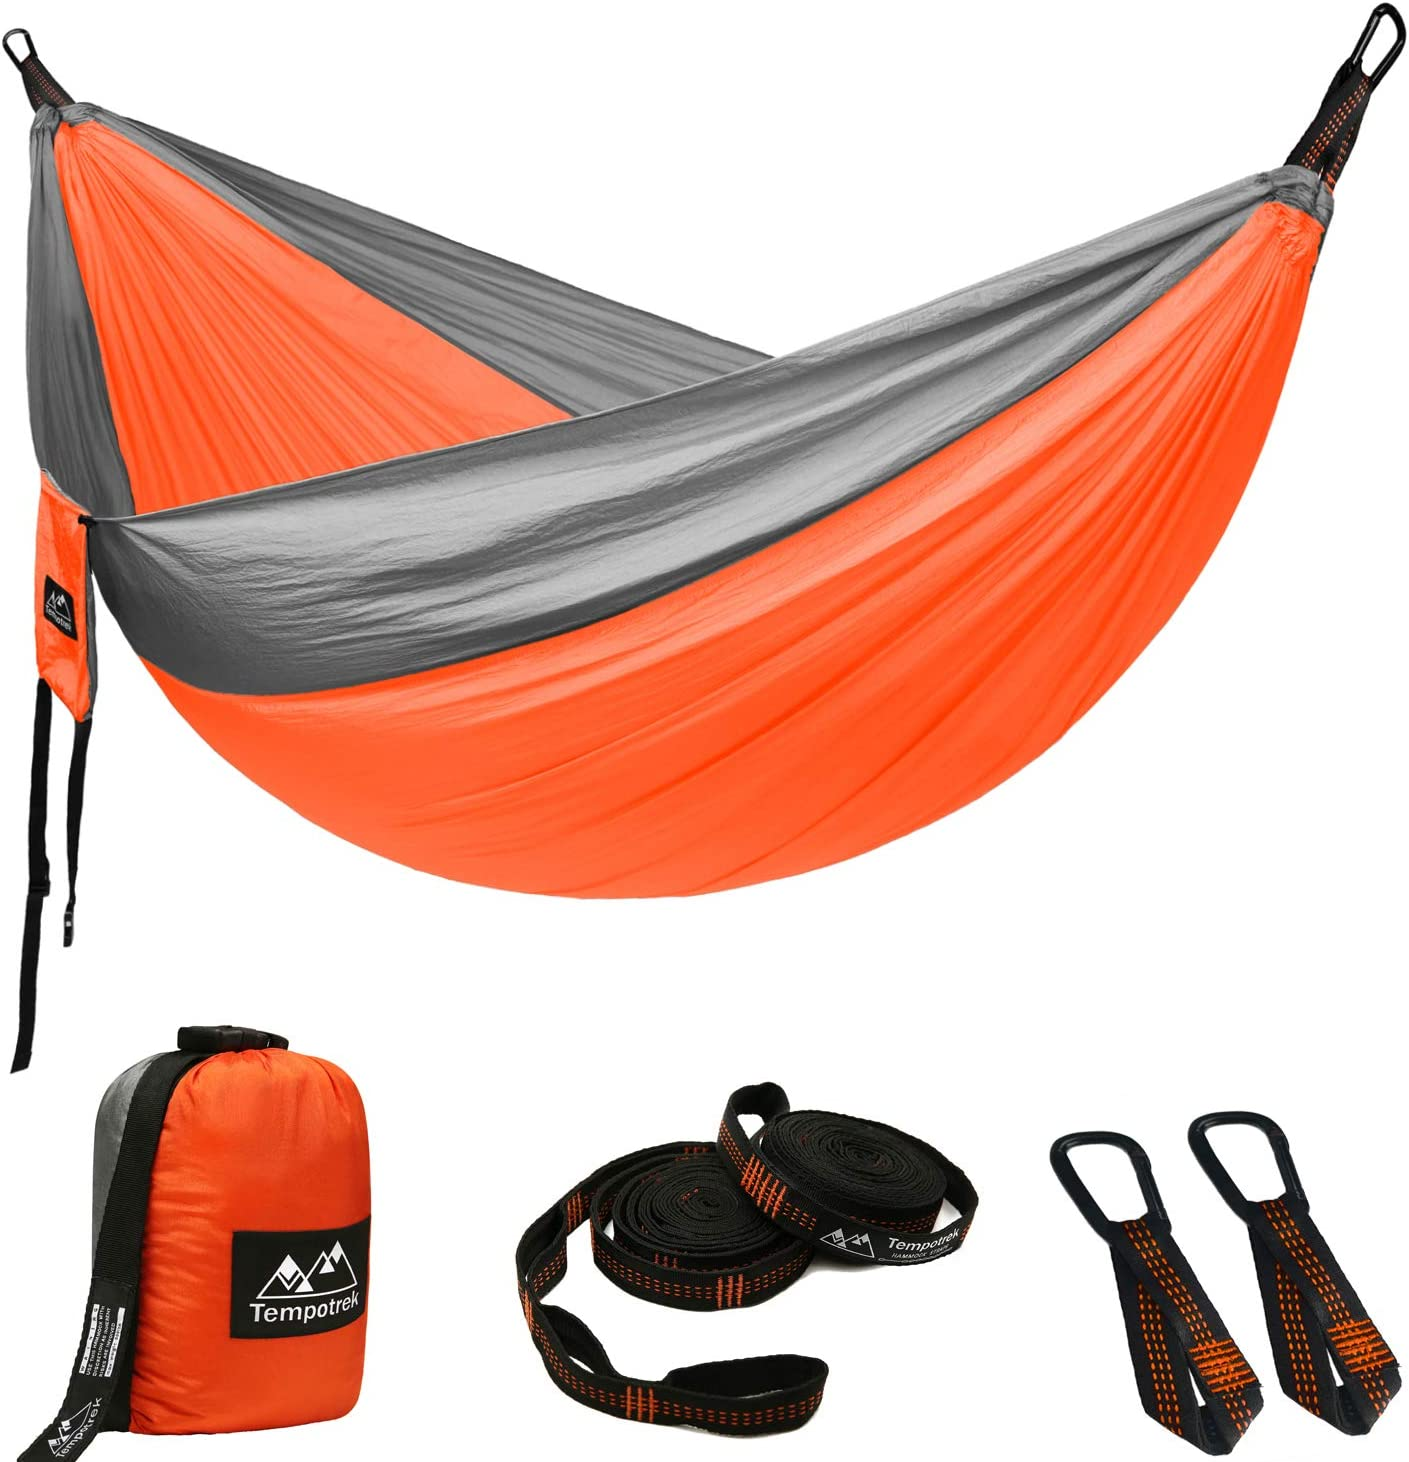 Tempotrek Double Camping Hammock Portable Indoor Outdoor Tree Hammock with 2 Hanging Straps Lightweight Nylon Portable Hammock for Backpacking, Travel, Beach and Garden